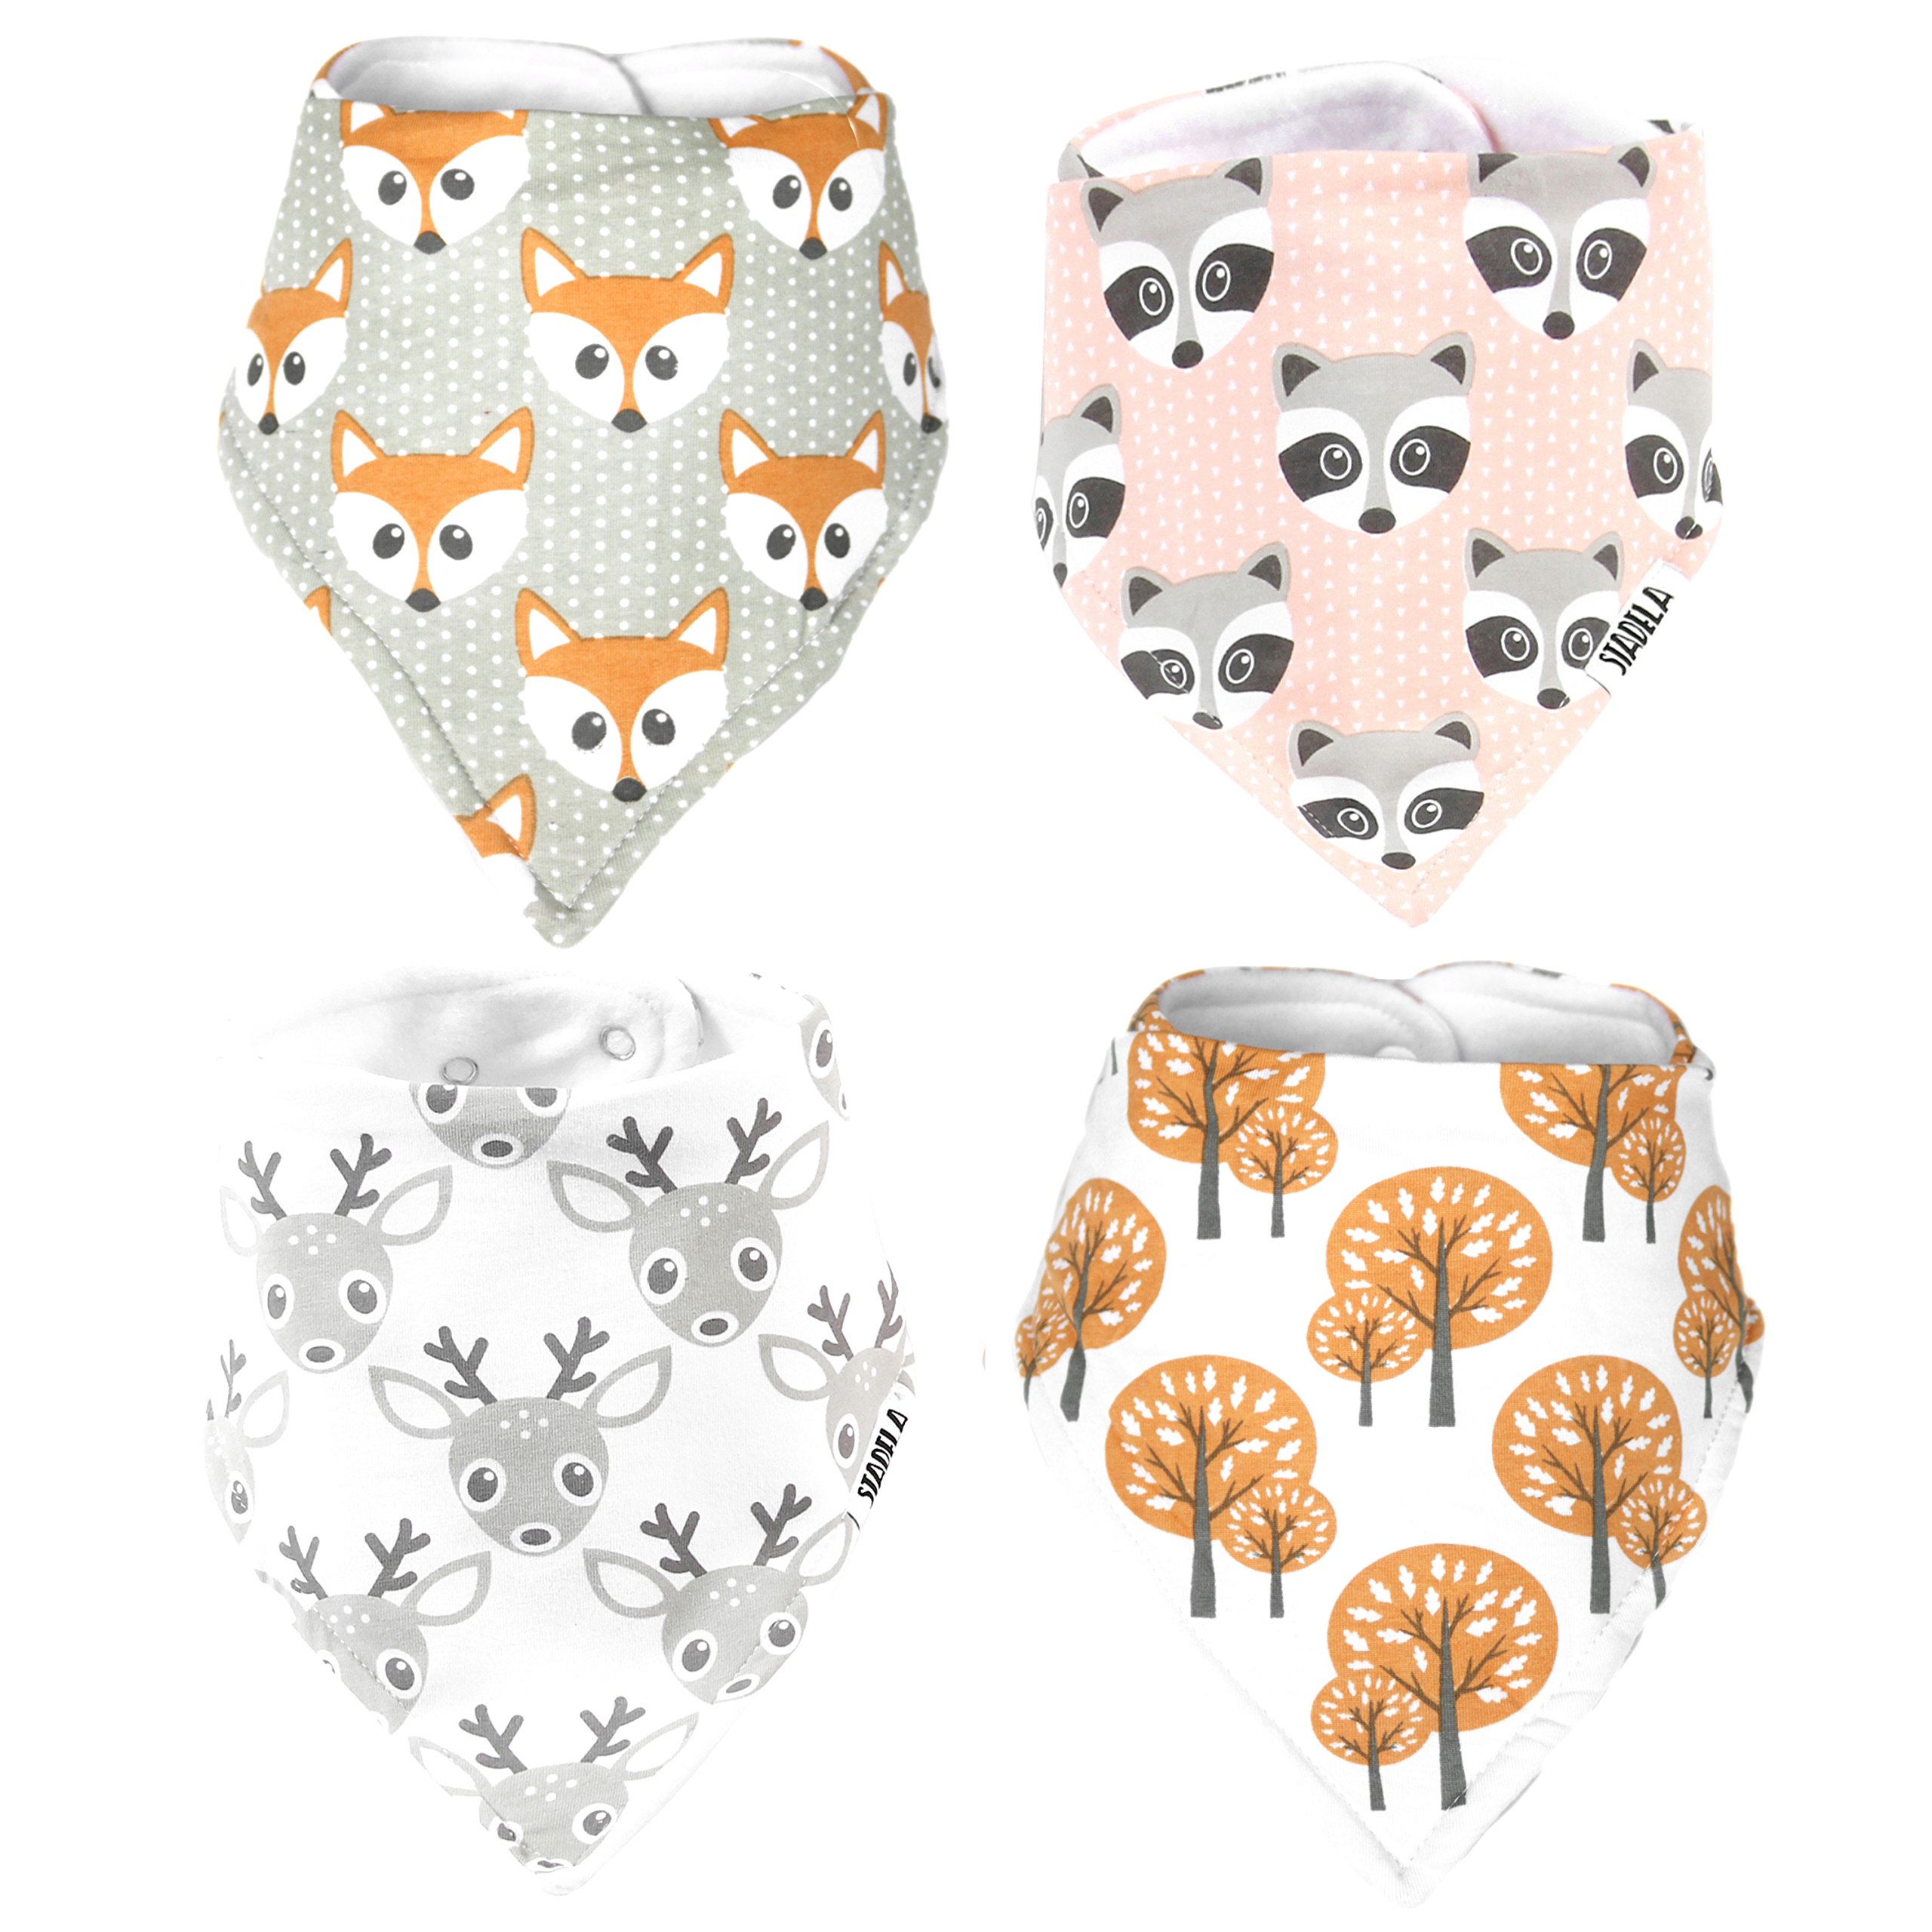 Stadela Baby Adjustable Bandana Drool Bibs for Drooling and Teething Nursery Burp Cloths 4 Pack Unisex Baby Shower Gift Set for Girl and Boy – Woodland Adventure Forest Animal Fox Deer Raccoon Tree by STADELA (Image #1)